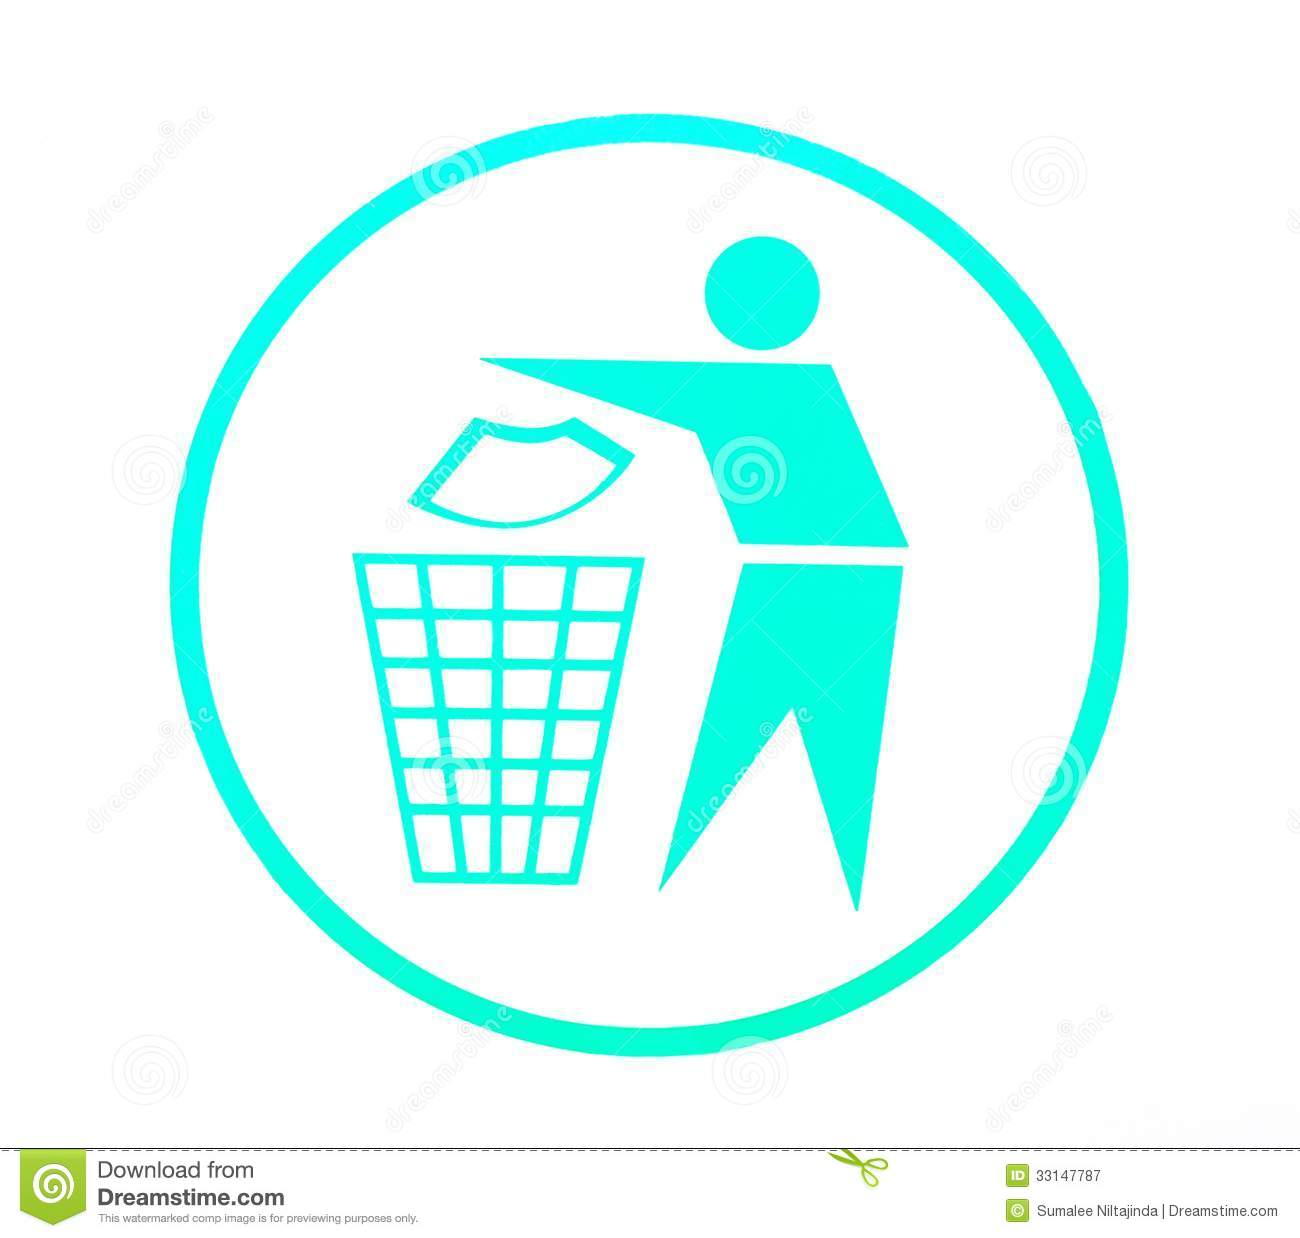 Keep Clean Symbol Royalty Free Stock Photography - Image: 33147787